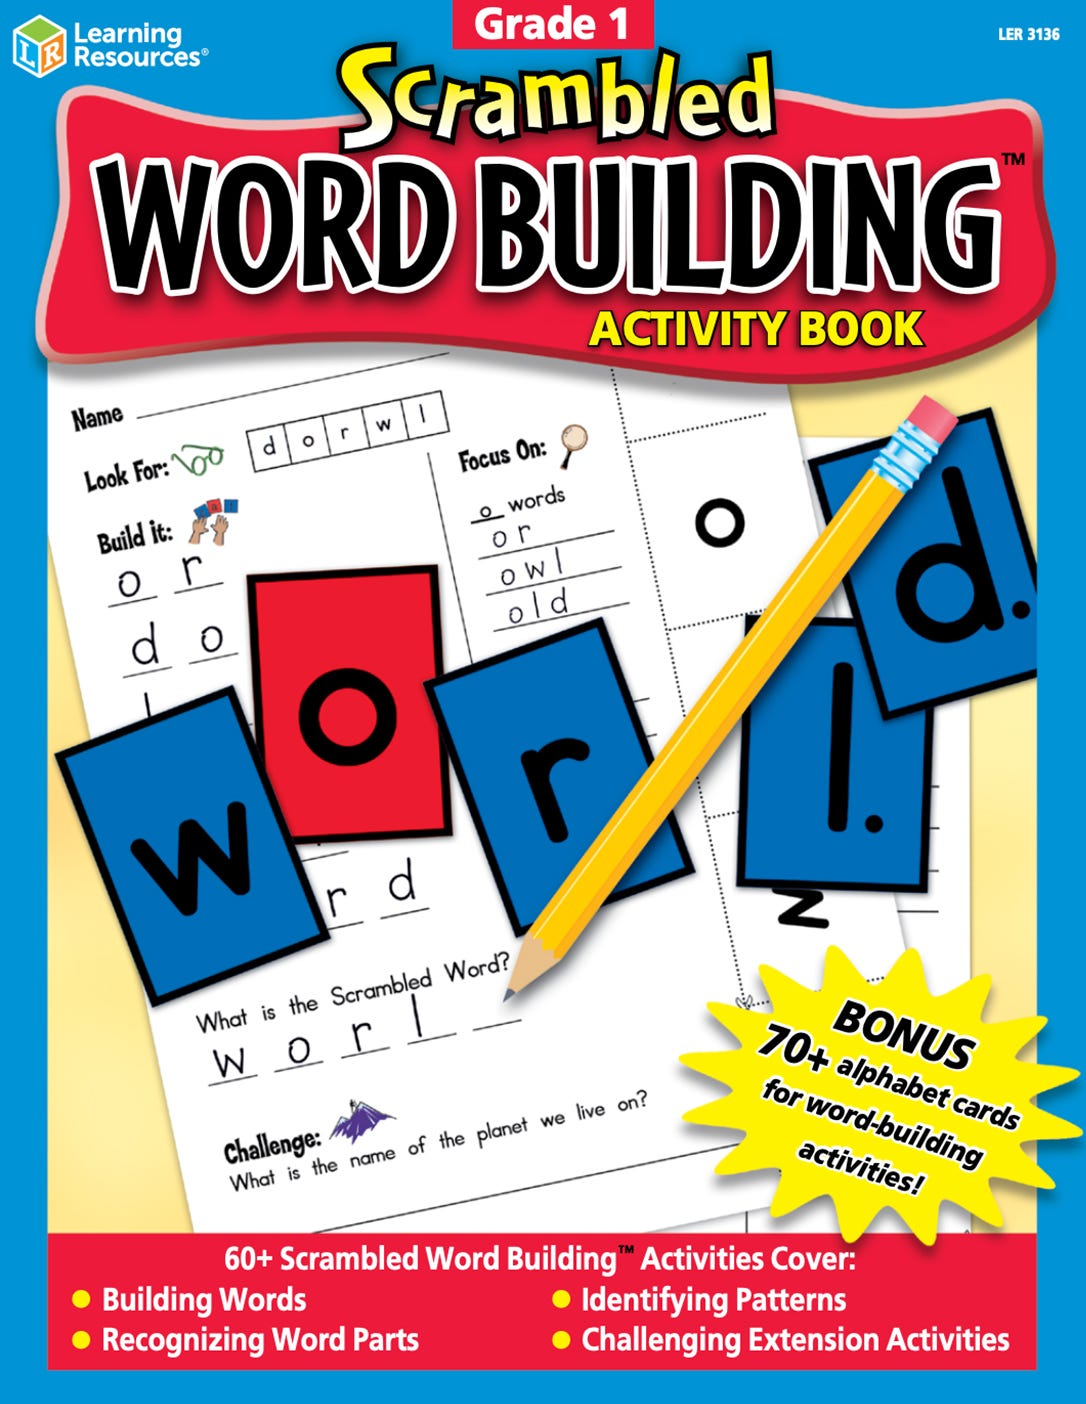 Scrambled Word Building Activity Book Grade 1